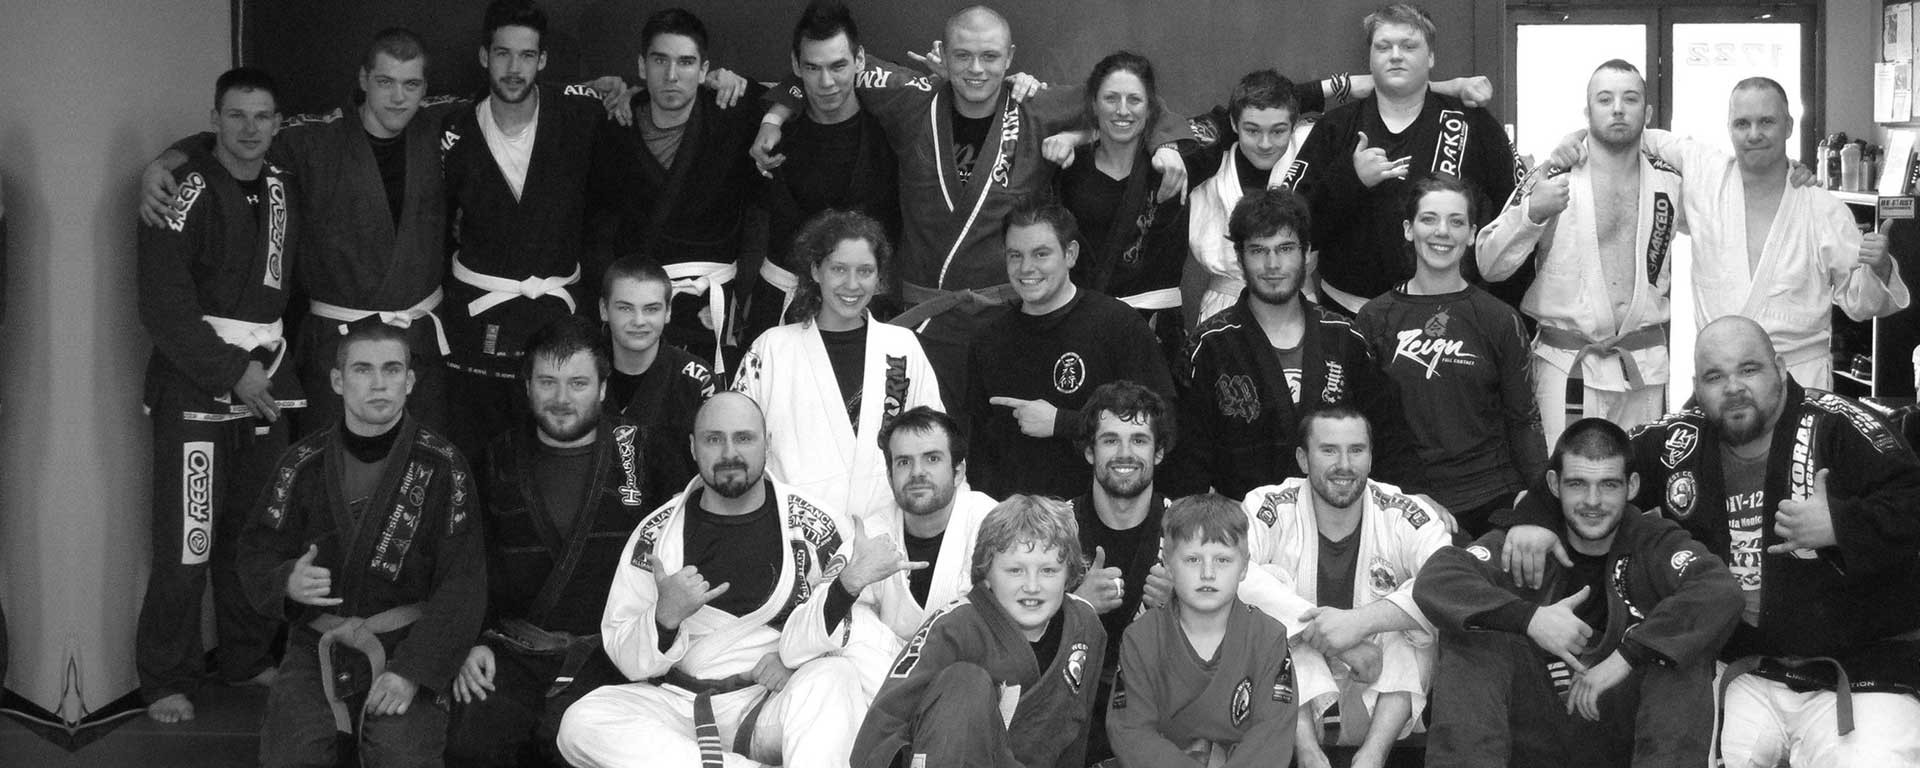 Welcome to CJ Martial Arts Nanaimo